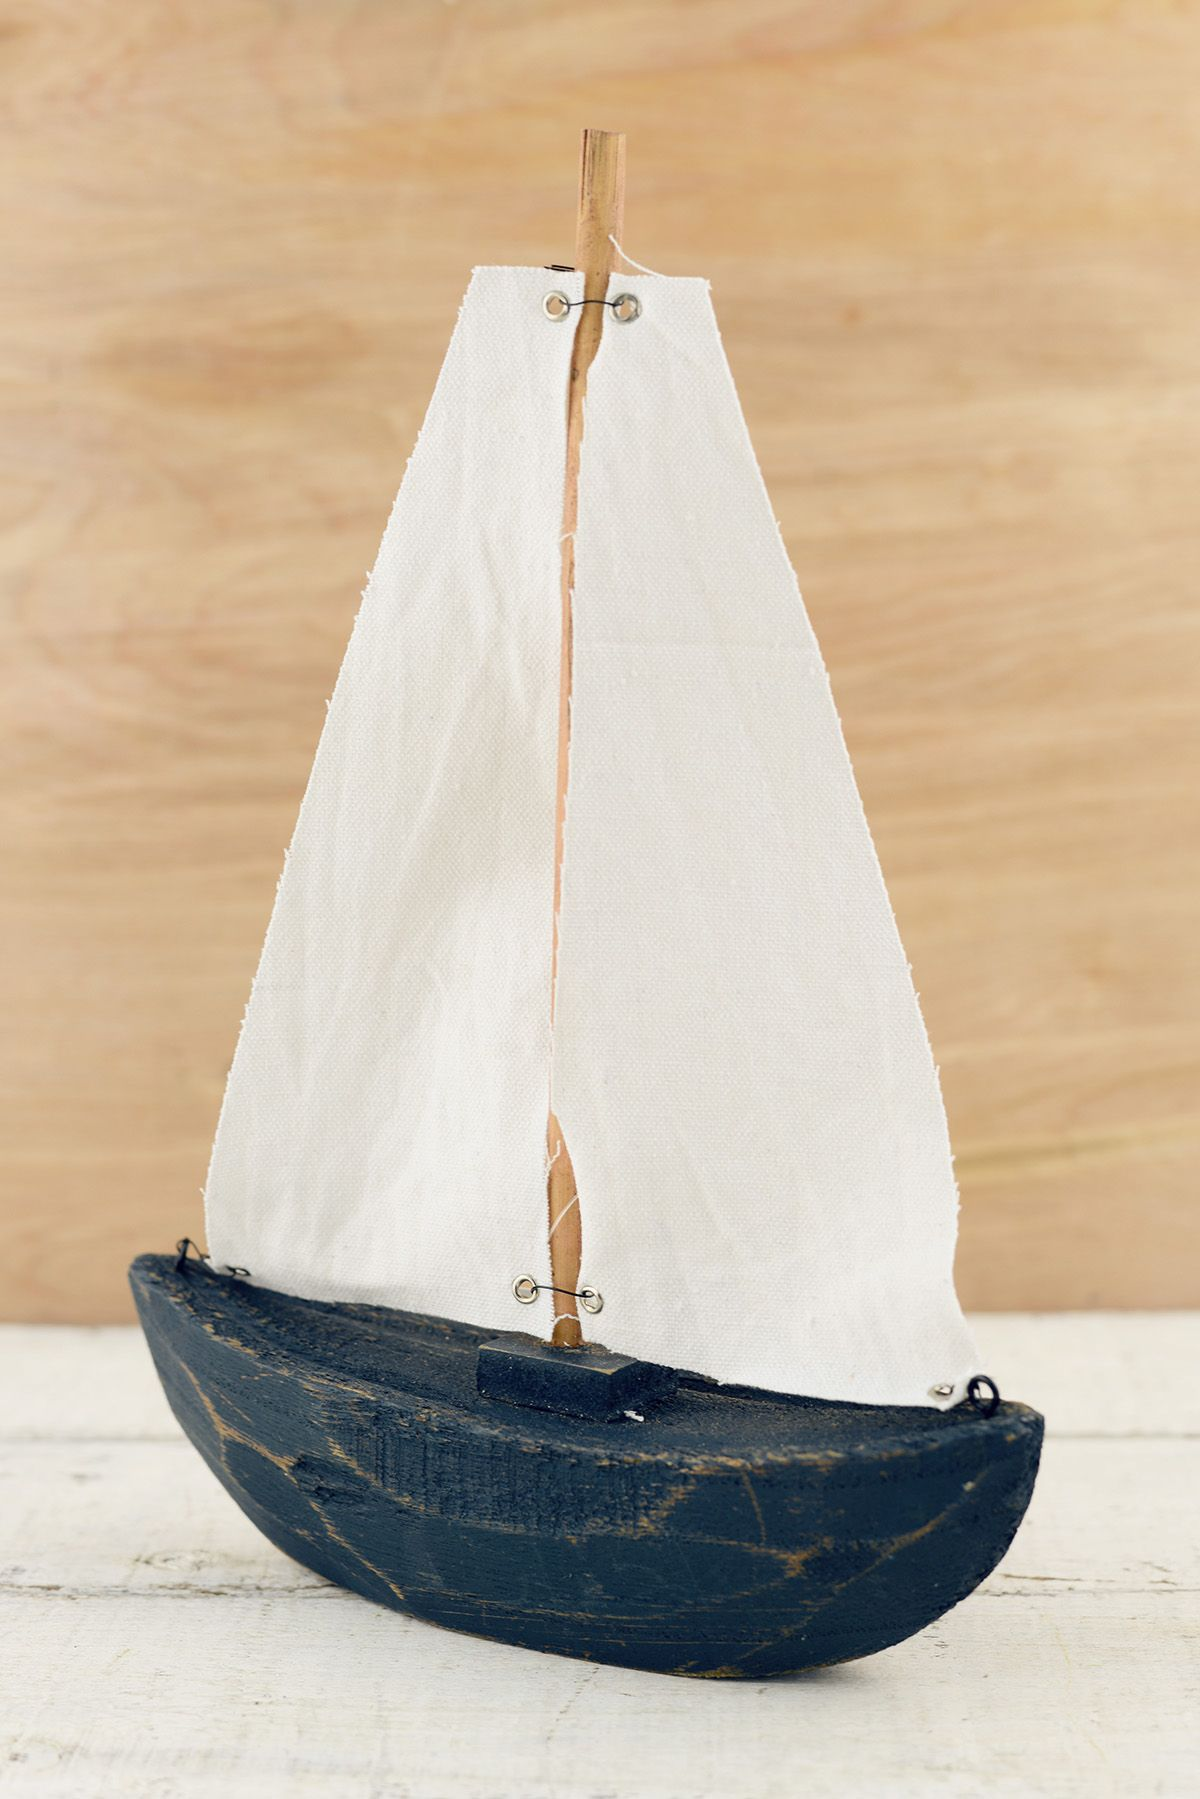 Wood Sailboat Blue/White 11x8in